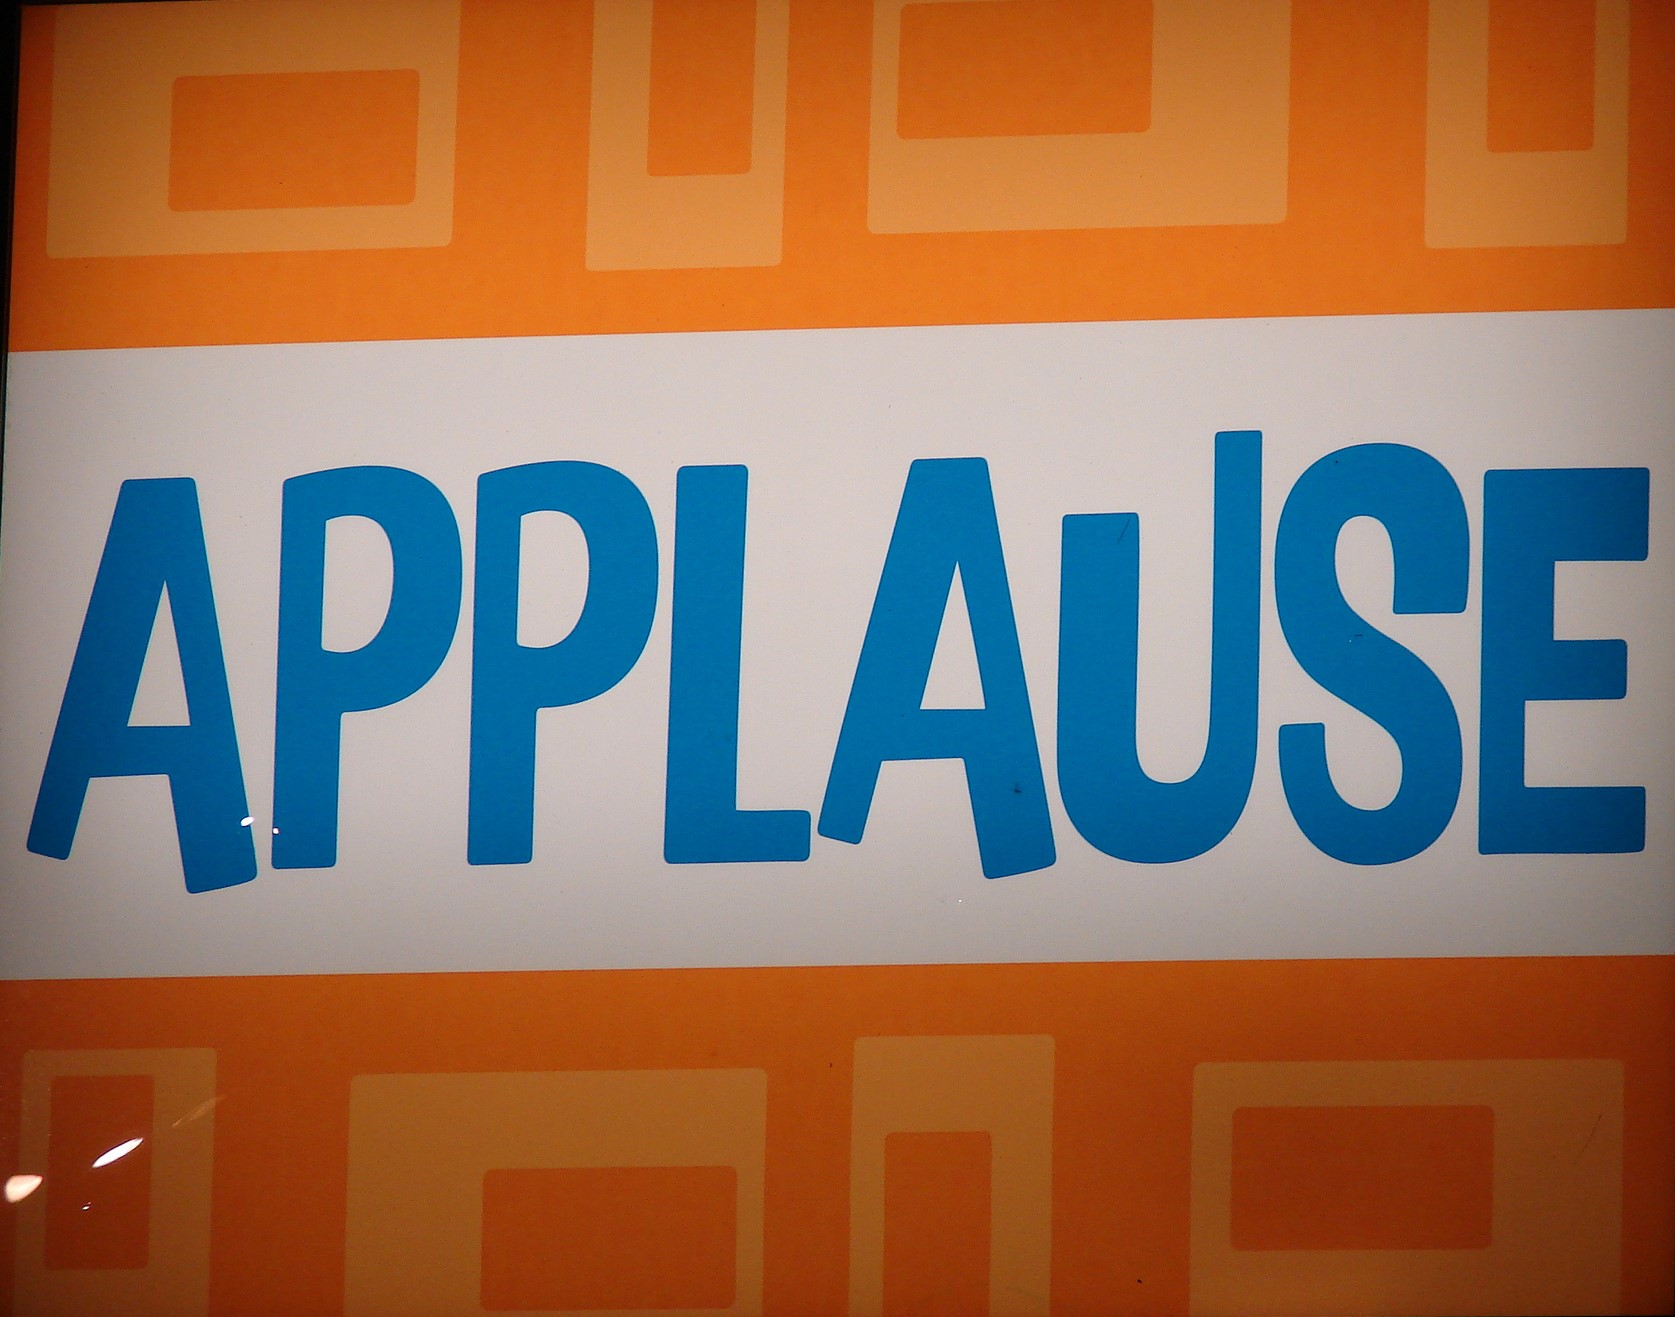 10.4 Applause – Kevin Standlee, Flickr